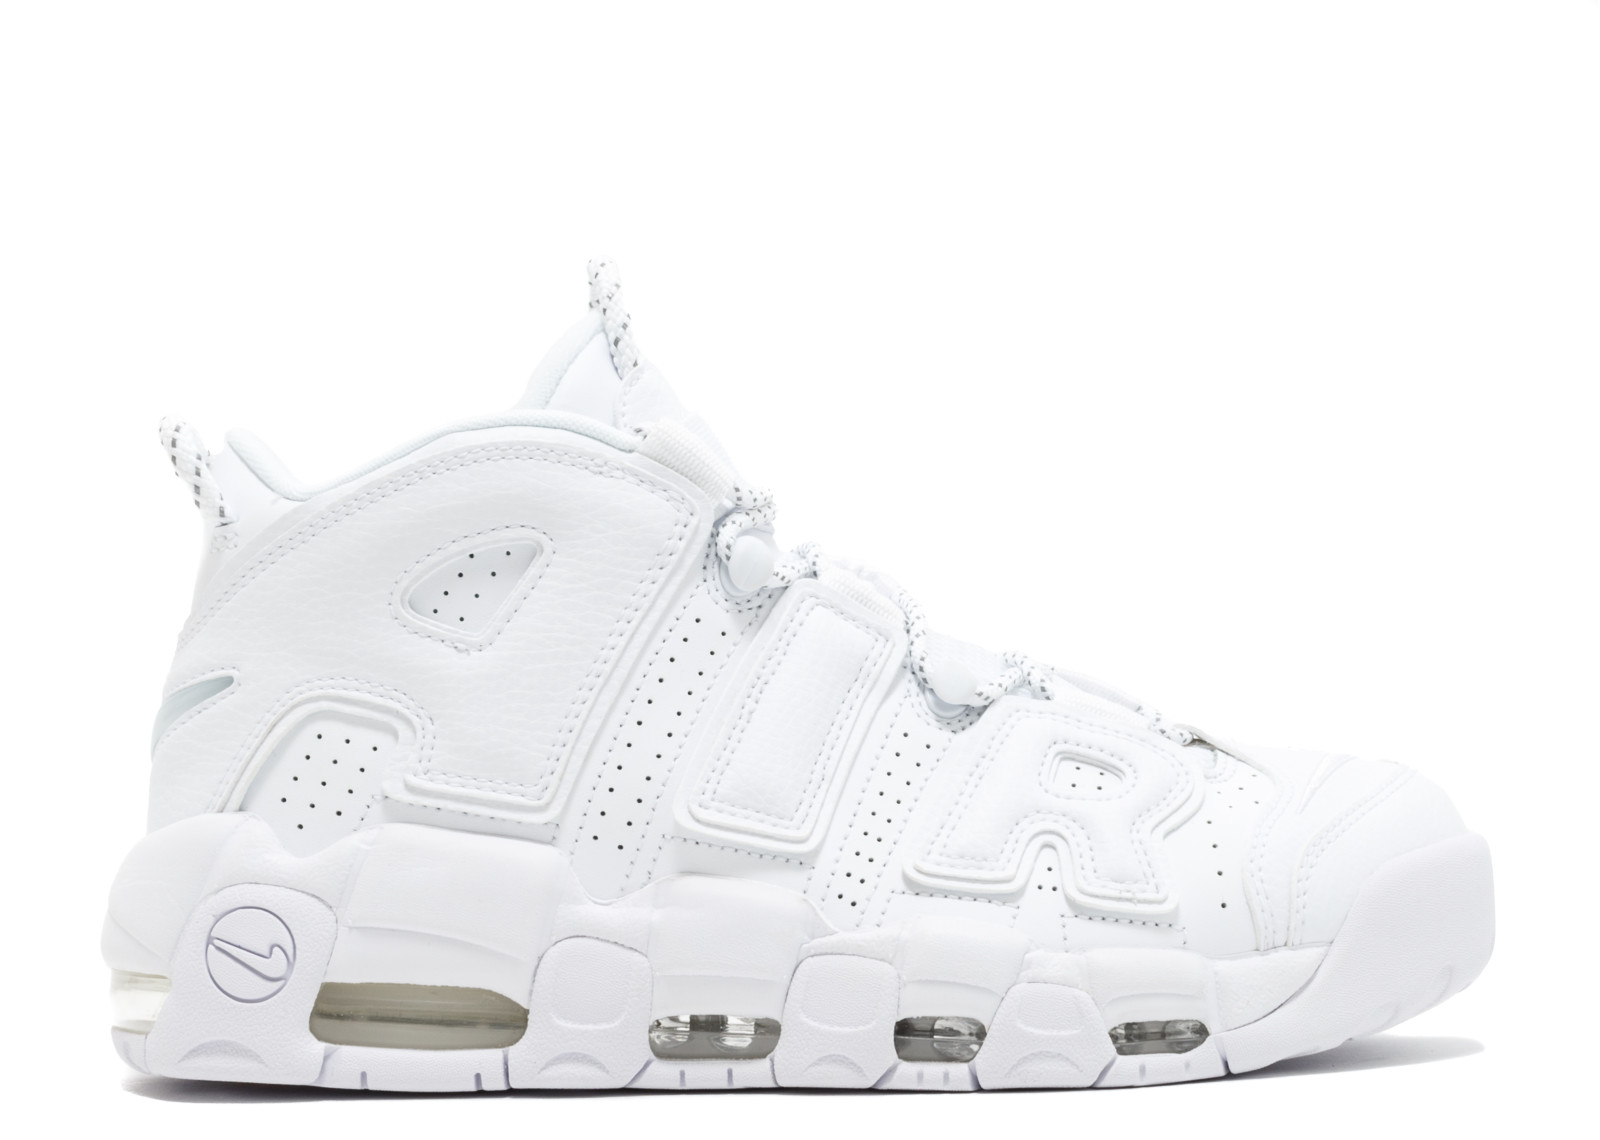 promo code 8ff93 b325d Prev Air More Uptempo 96 White 921948-100